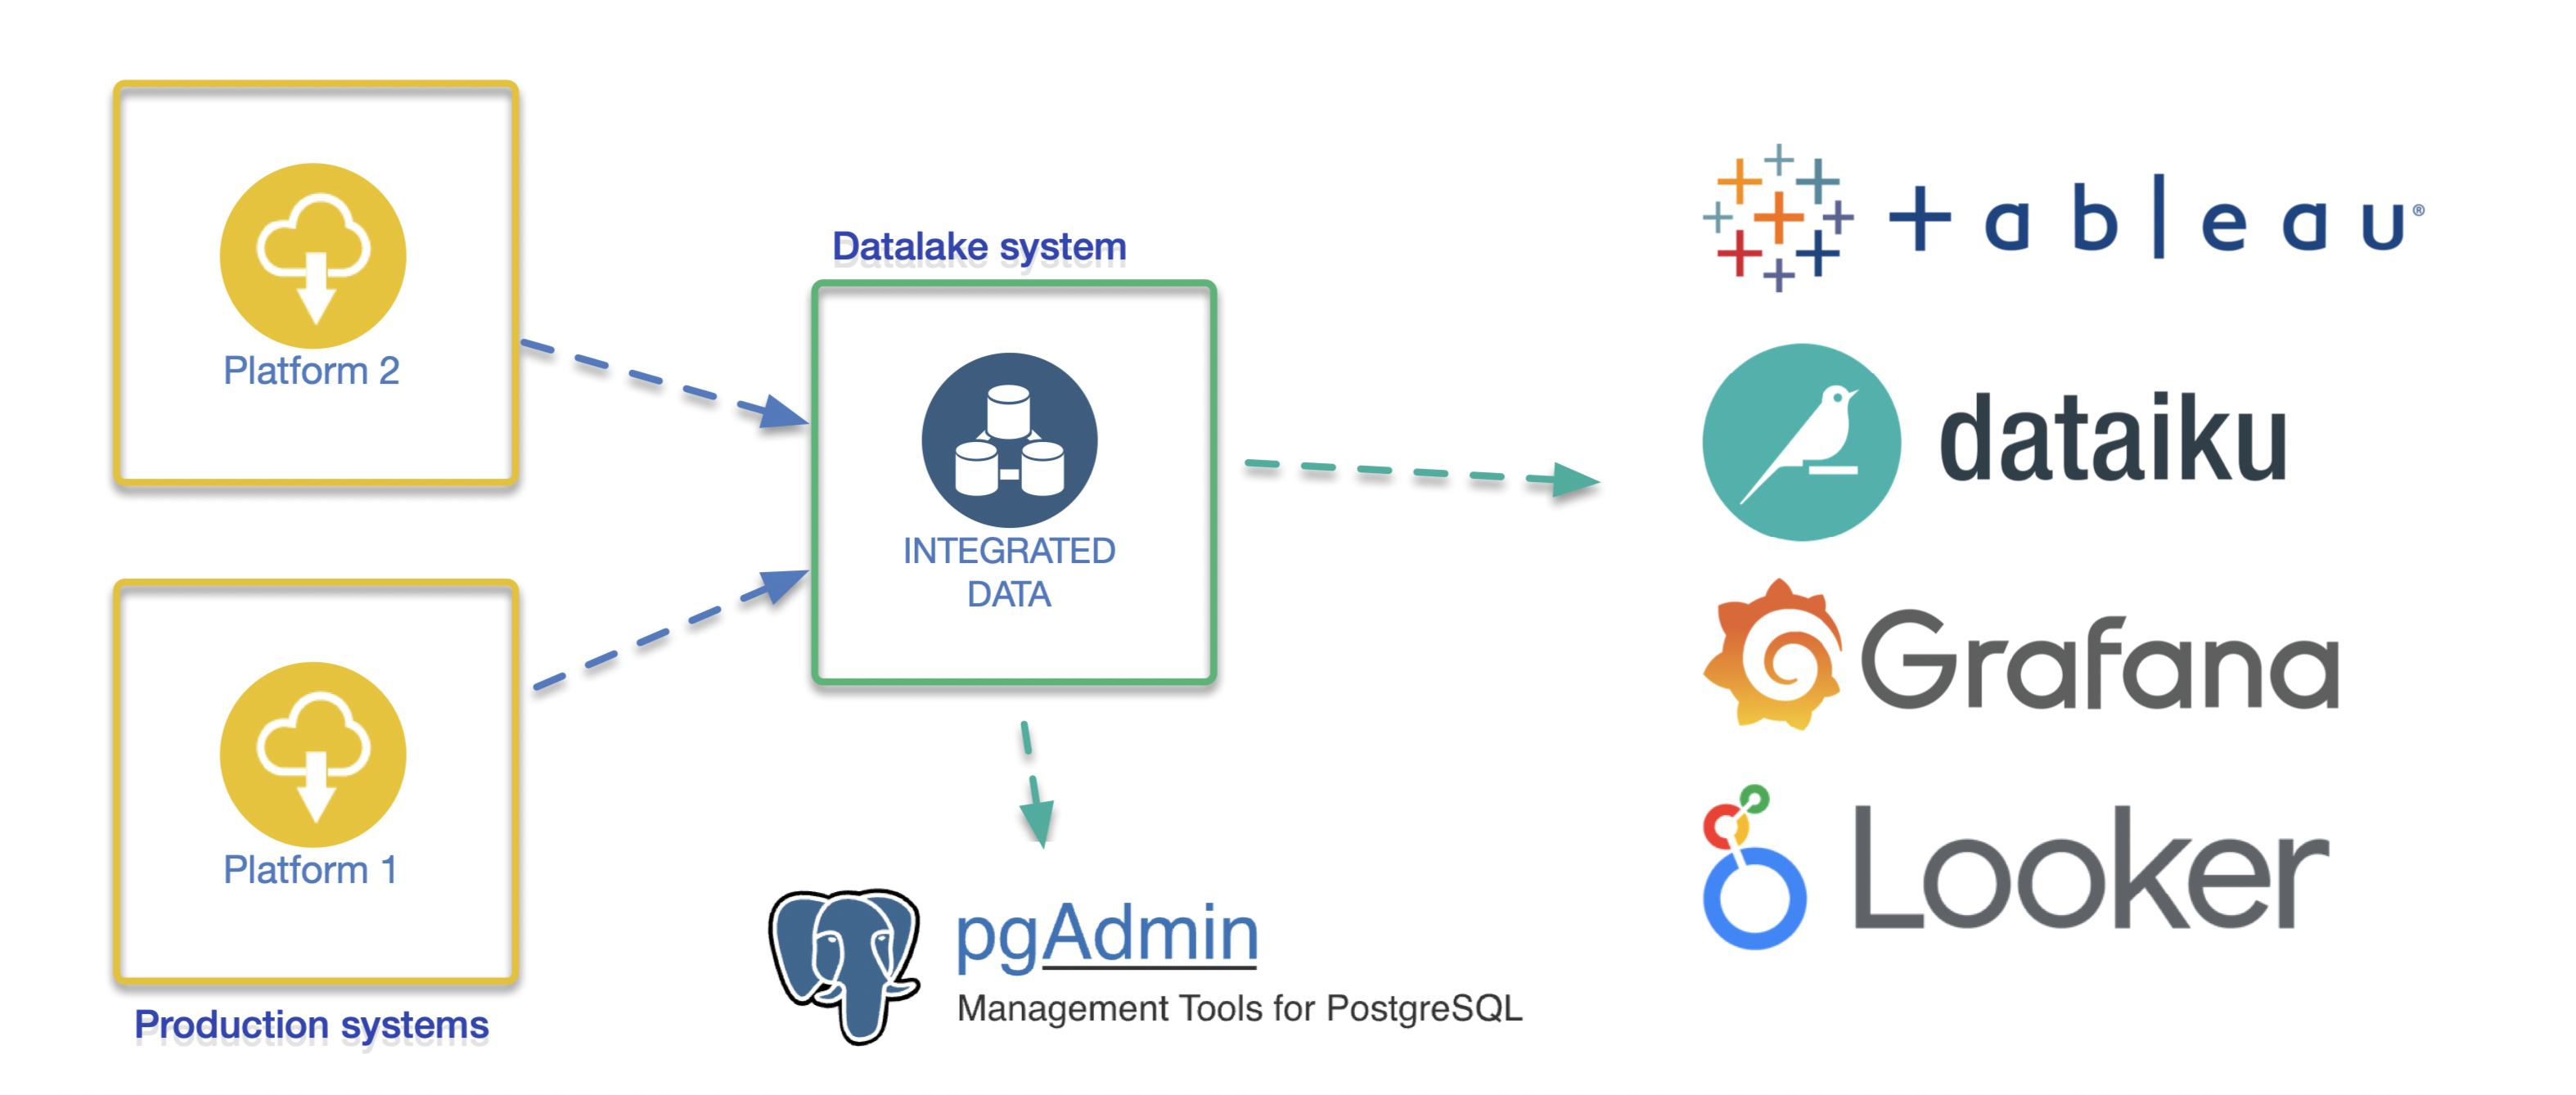 Project Datalake tools featured